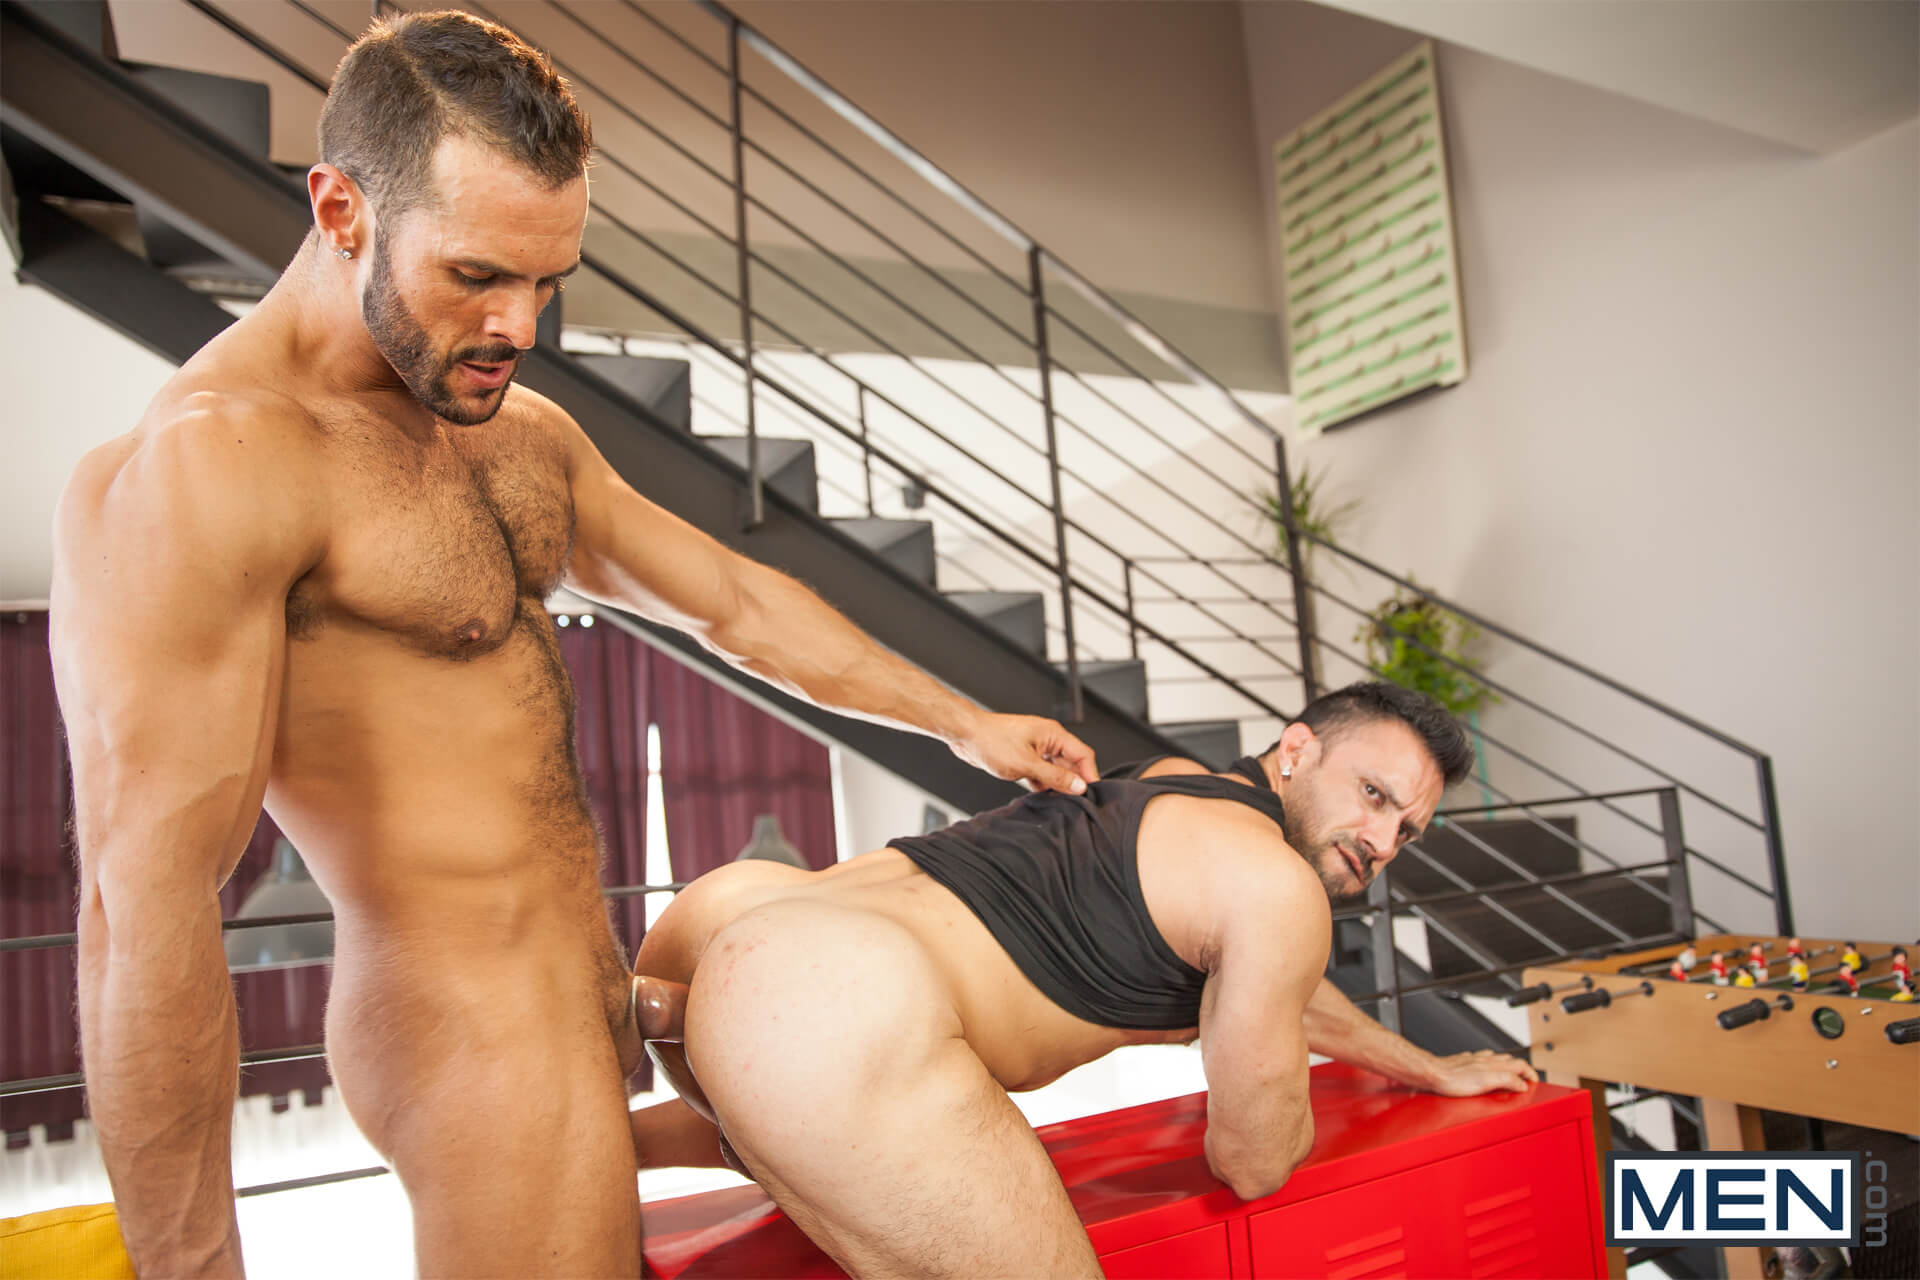 men gods of men good morning love denis vega flex xtremmo gay porn blog image 12